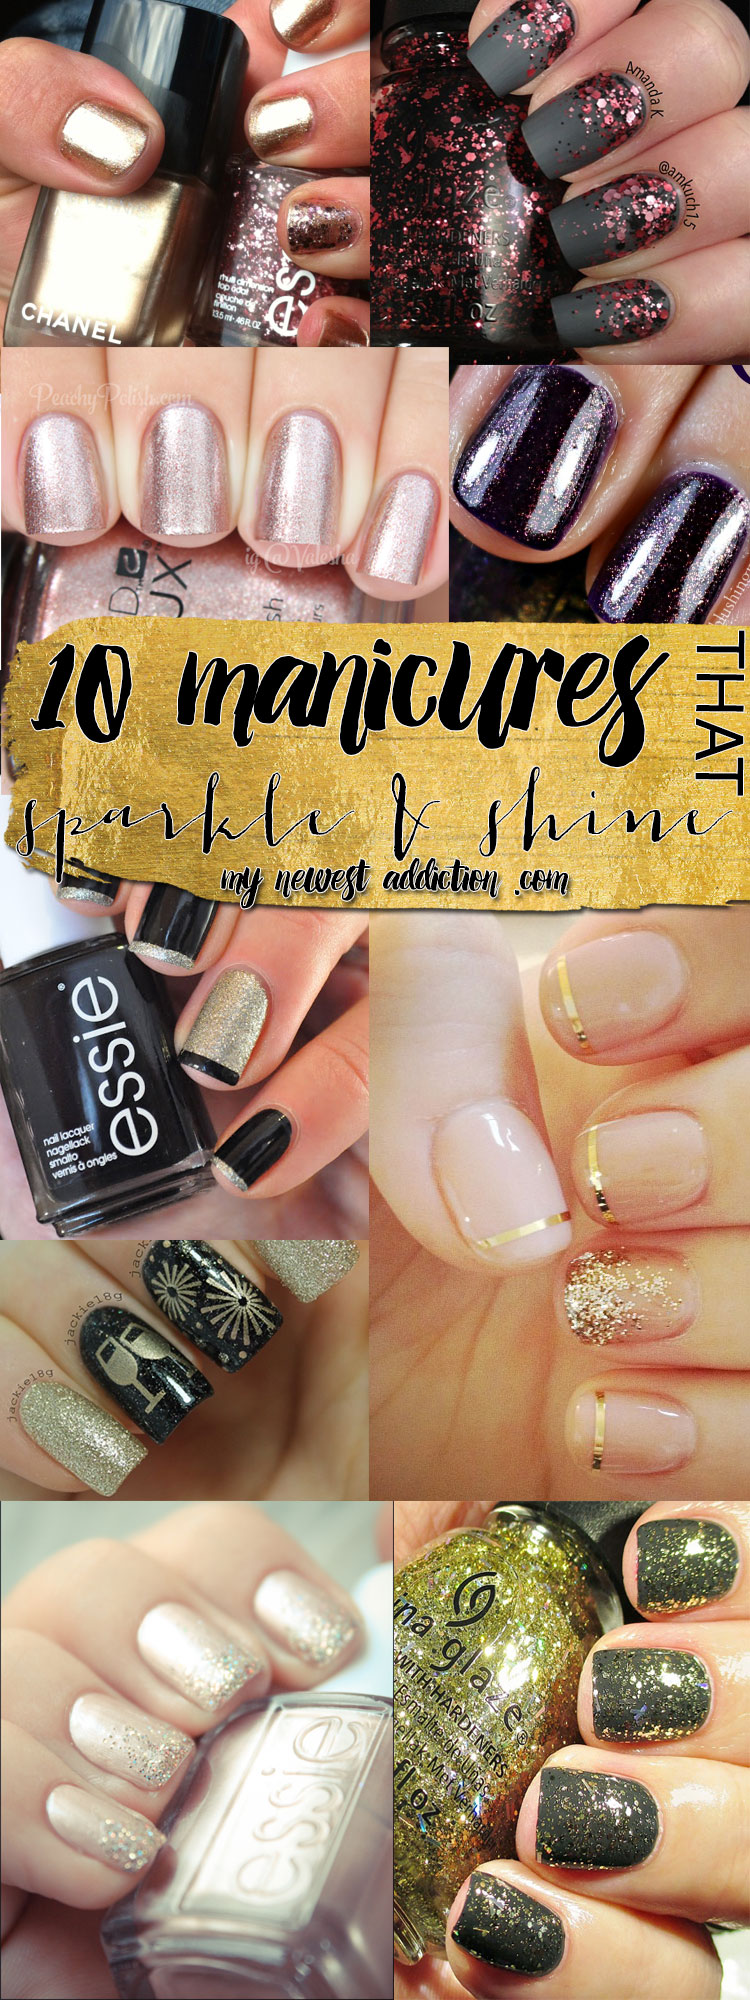 10 Gorgeous Manicures that Sparkle and Shine